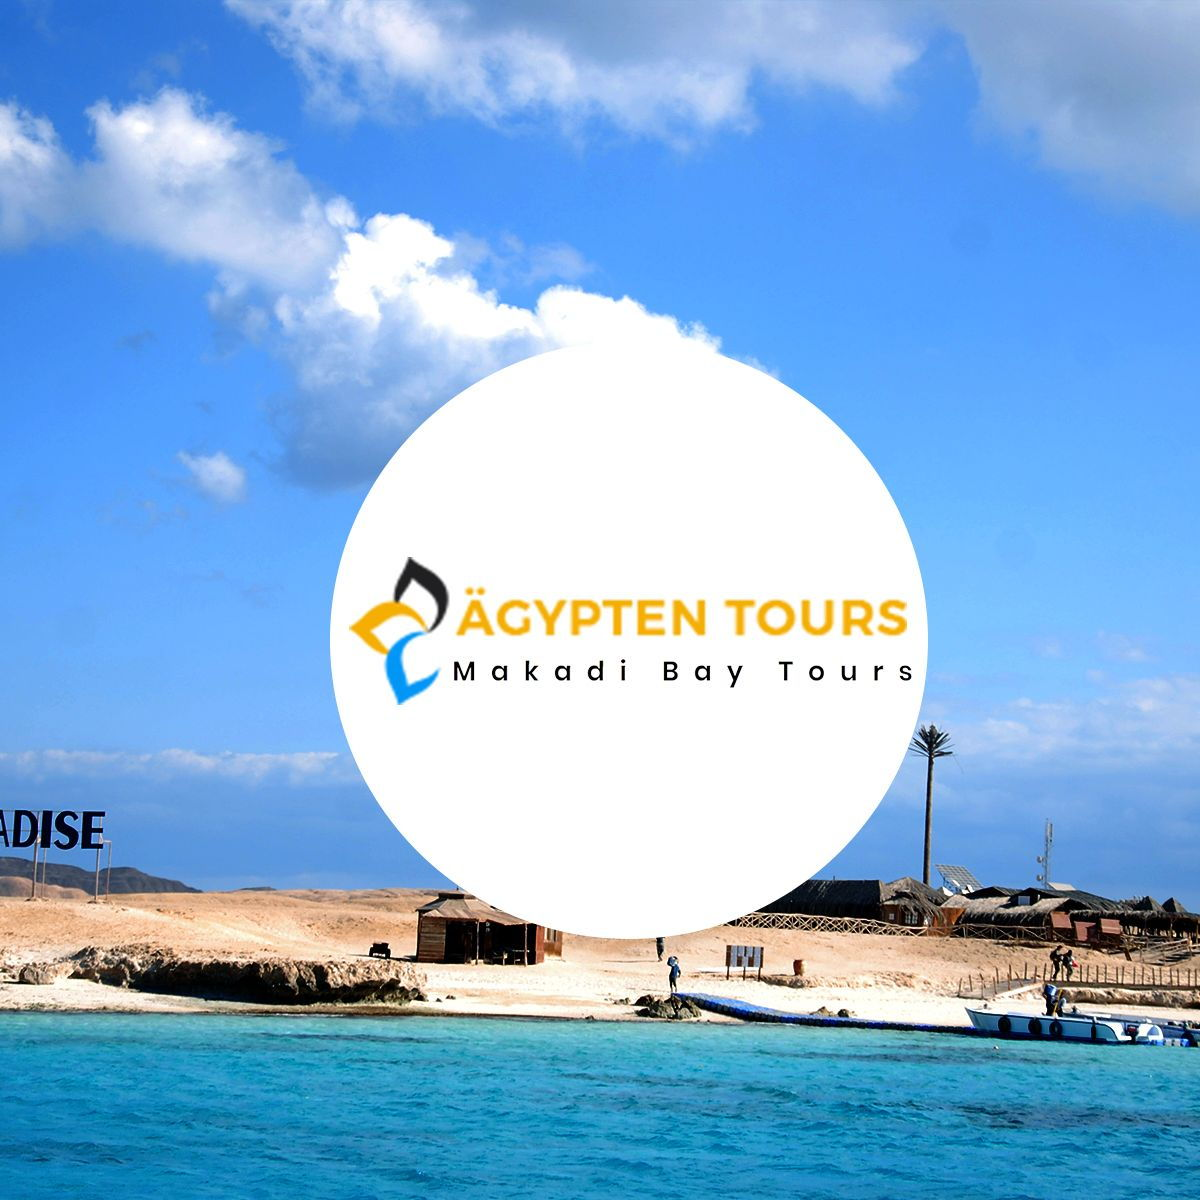 About Makady Bay Tours